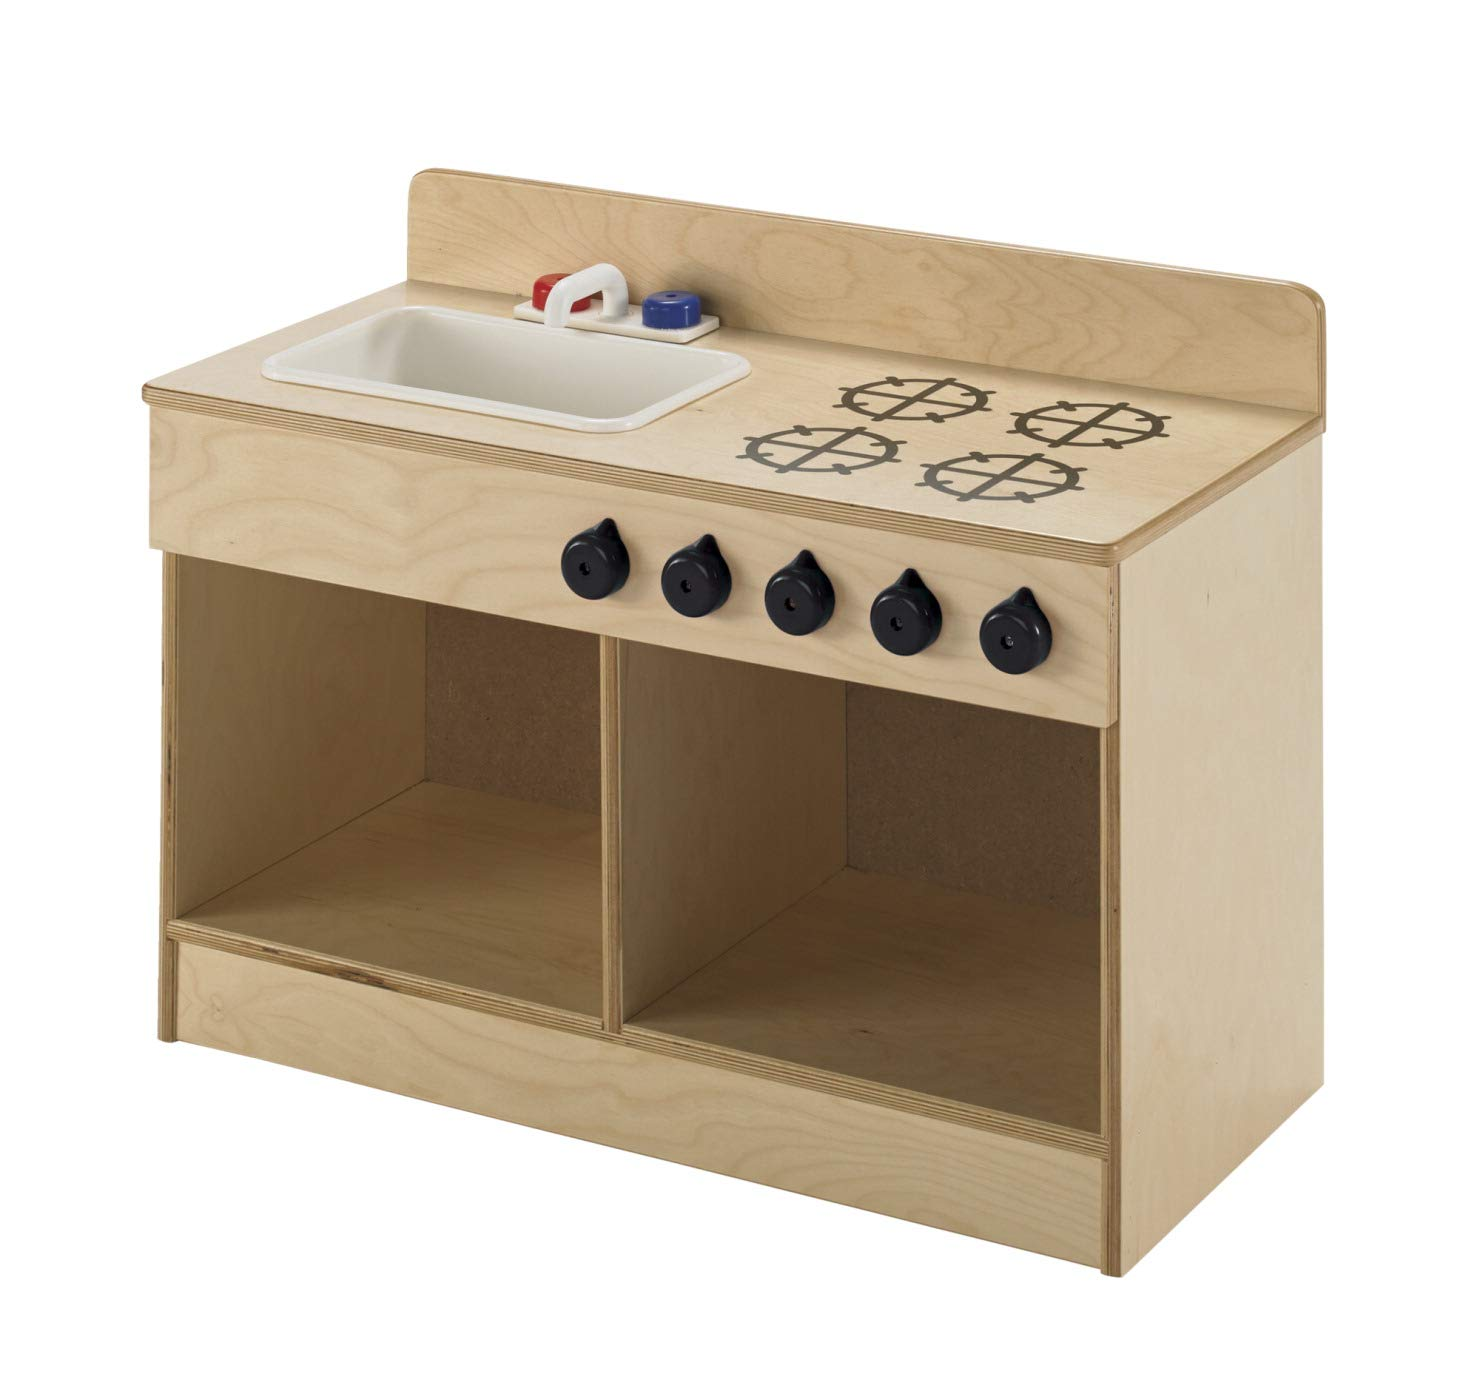 Childcraft 1491196 Toddler Sink and Stove Combo, 21.5'' Height, 13.38'' Width, 29.5'' Length, Natural Wood by Childcraft (Image #4)